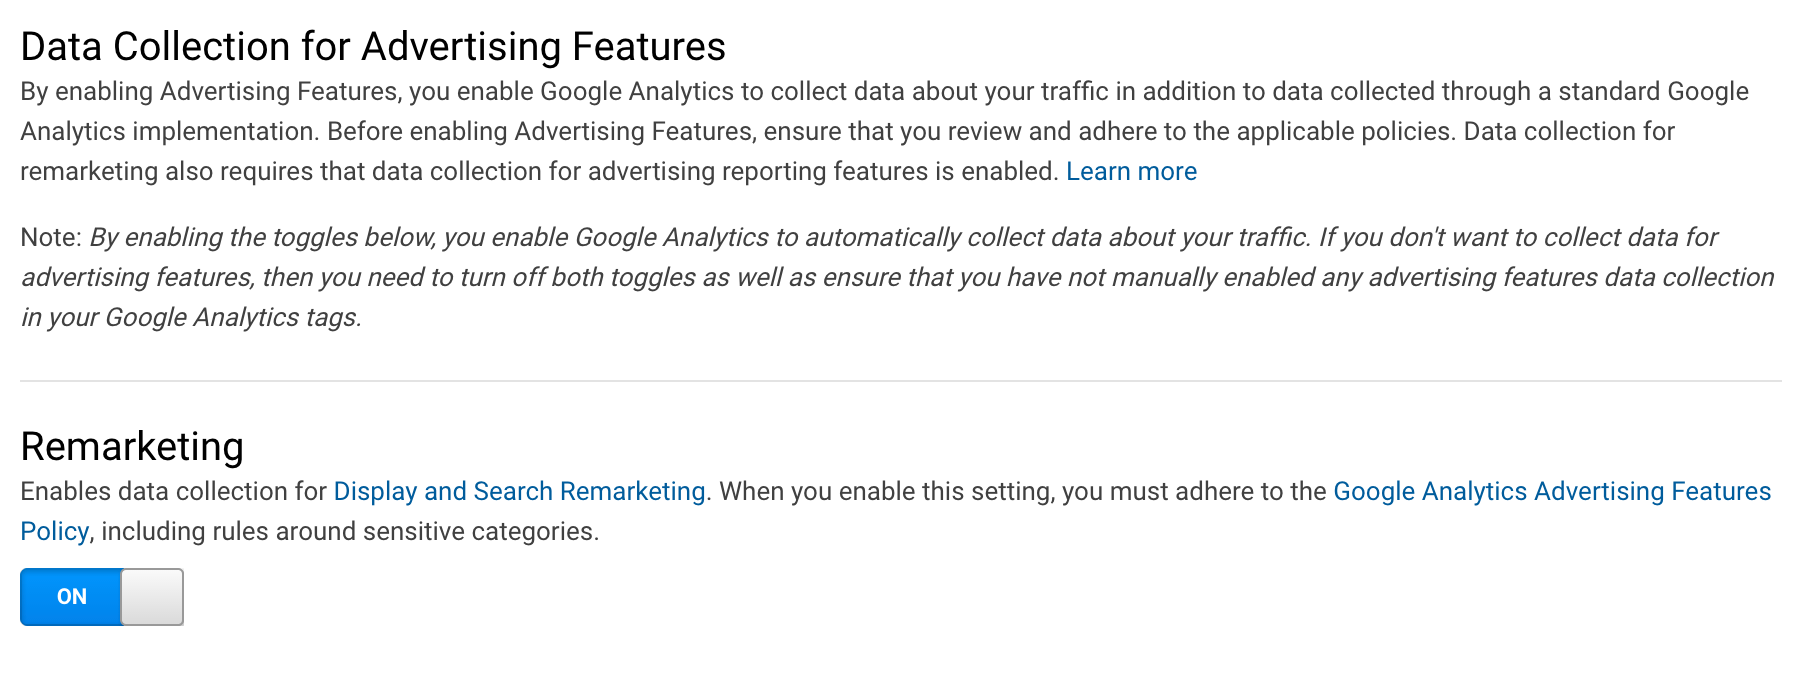 you are probably aware that any site using google analytics should display a privacy policy and disclose the use of google analytics